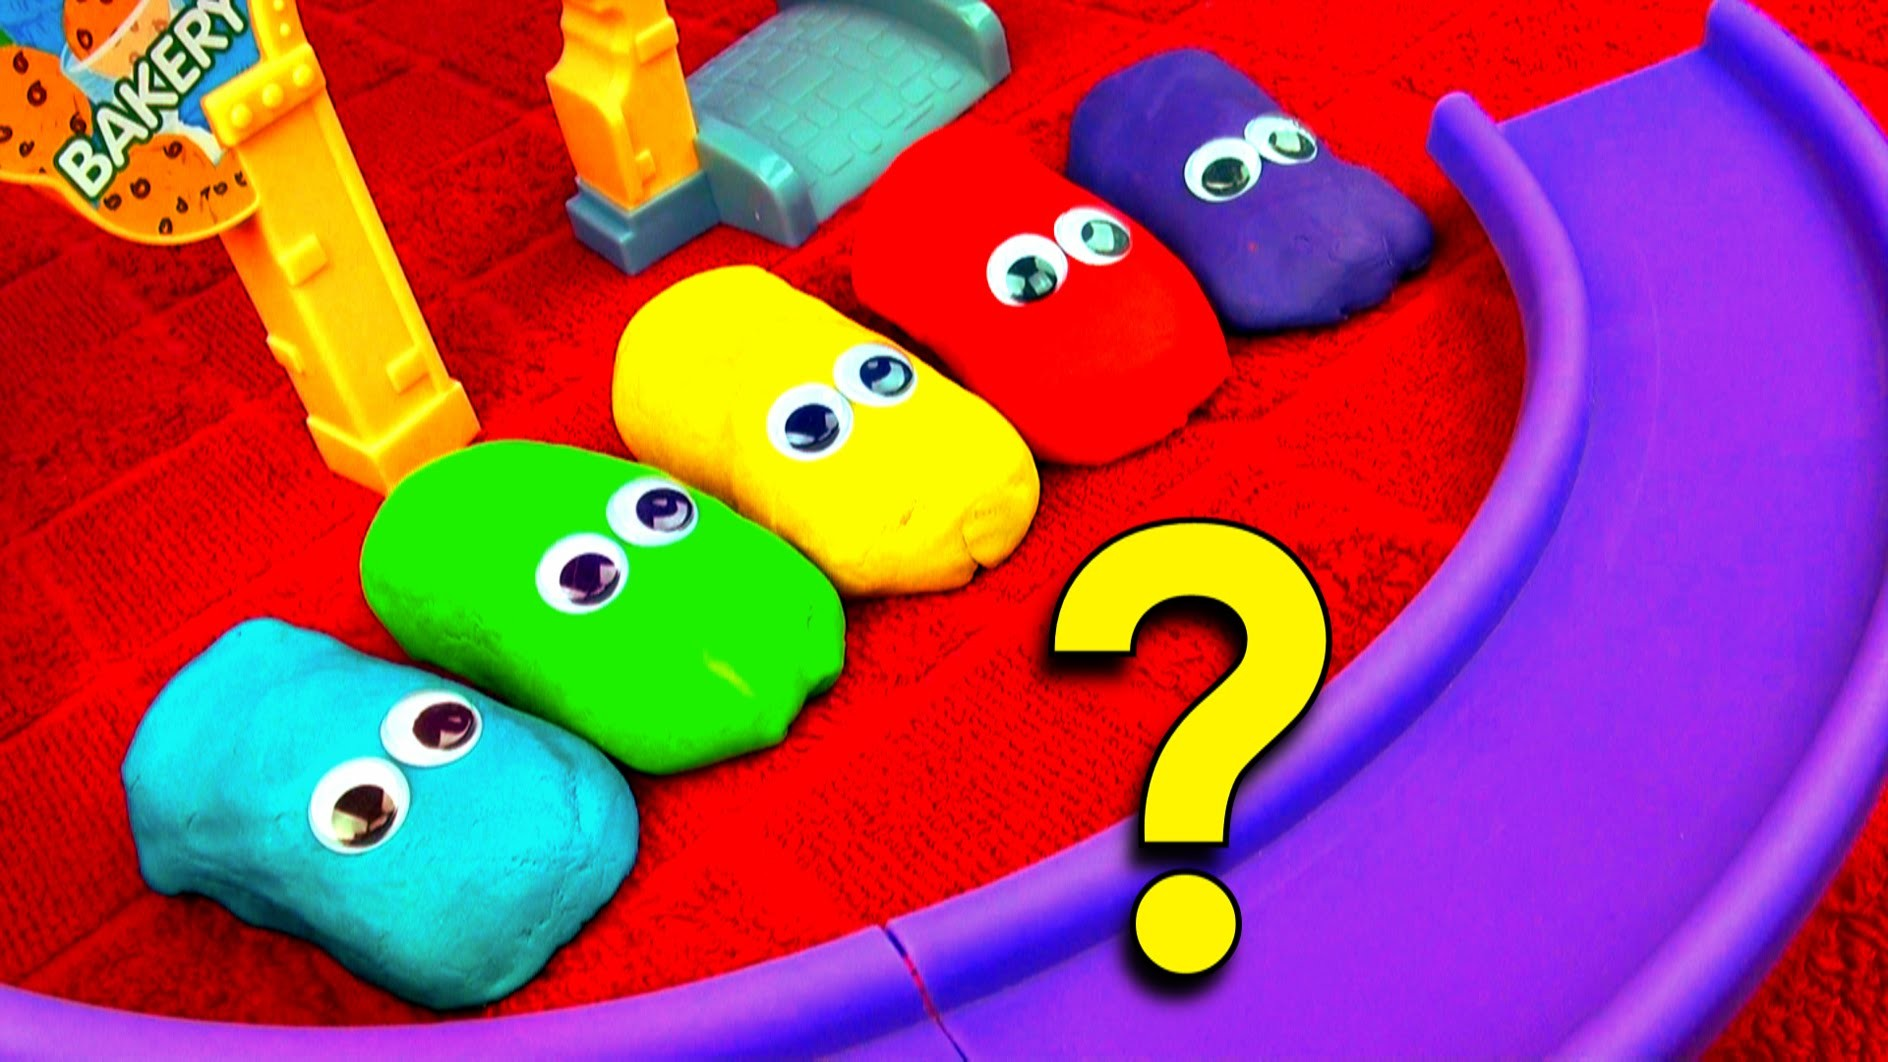 Play Doh Cars Guessing Game! Guess Who's Hiding! Disney Cars Hide n Seek Toy Learning Game FluffyJet